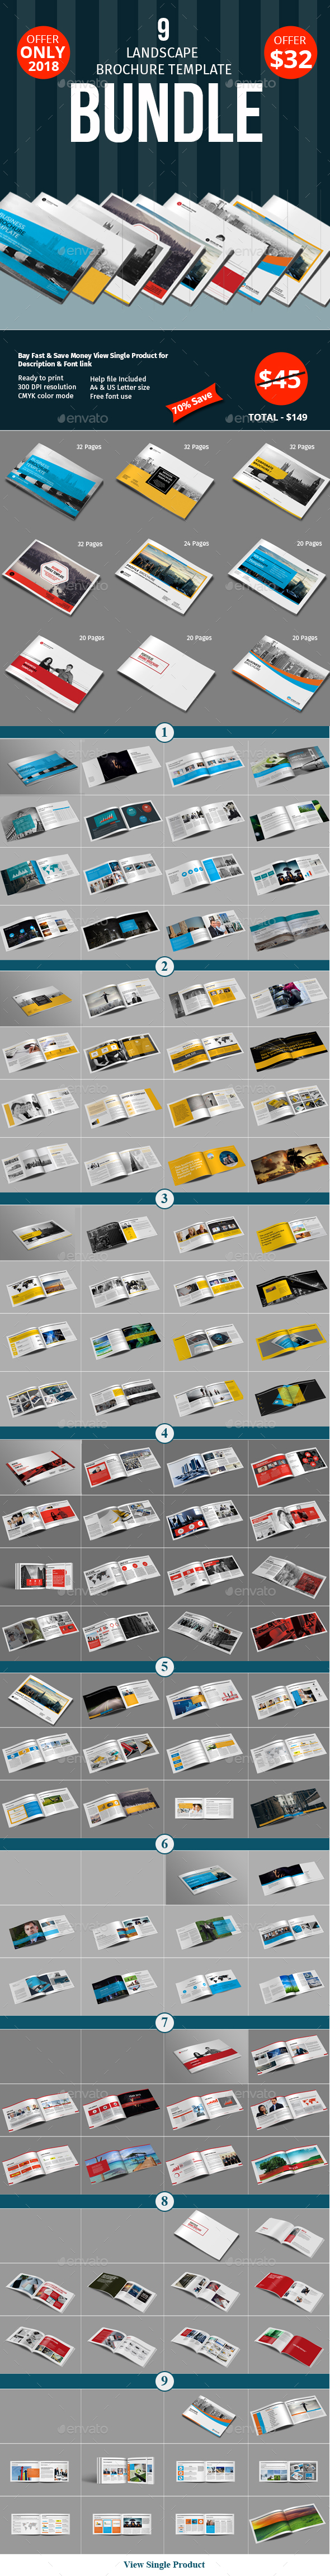 Lanscape Brochure Template Bundle - Corporate Brochures